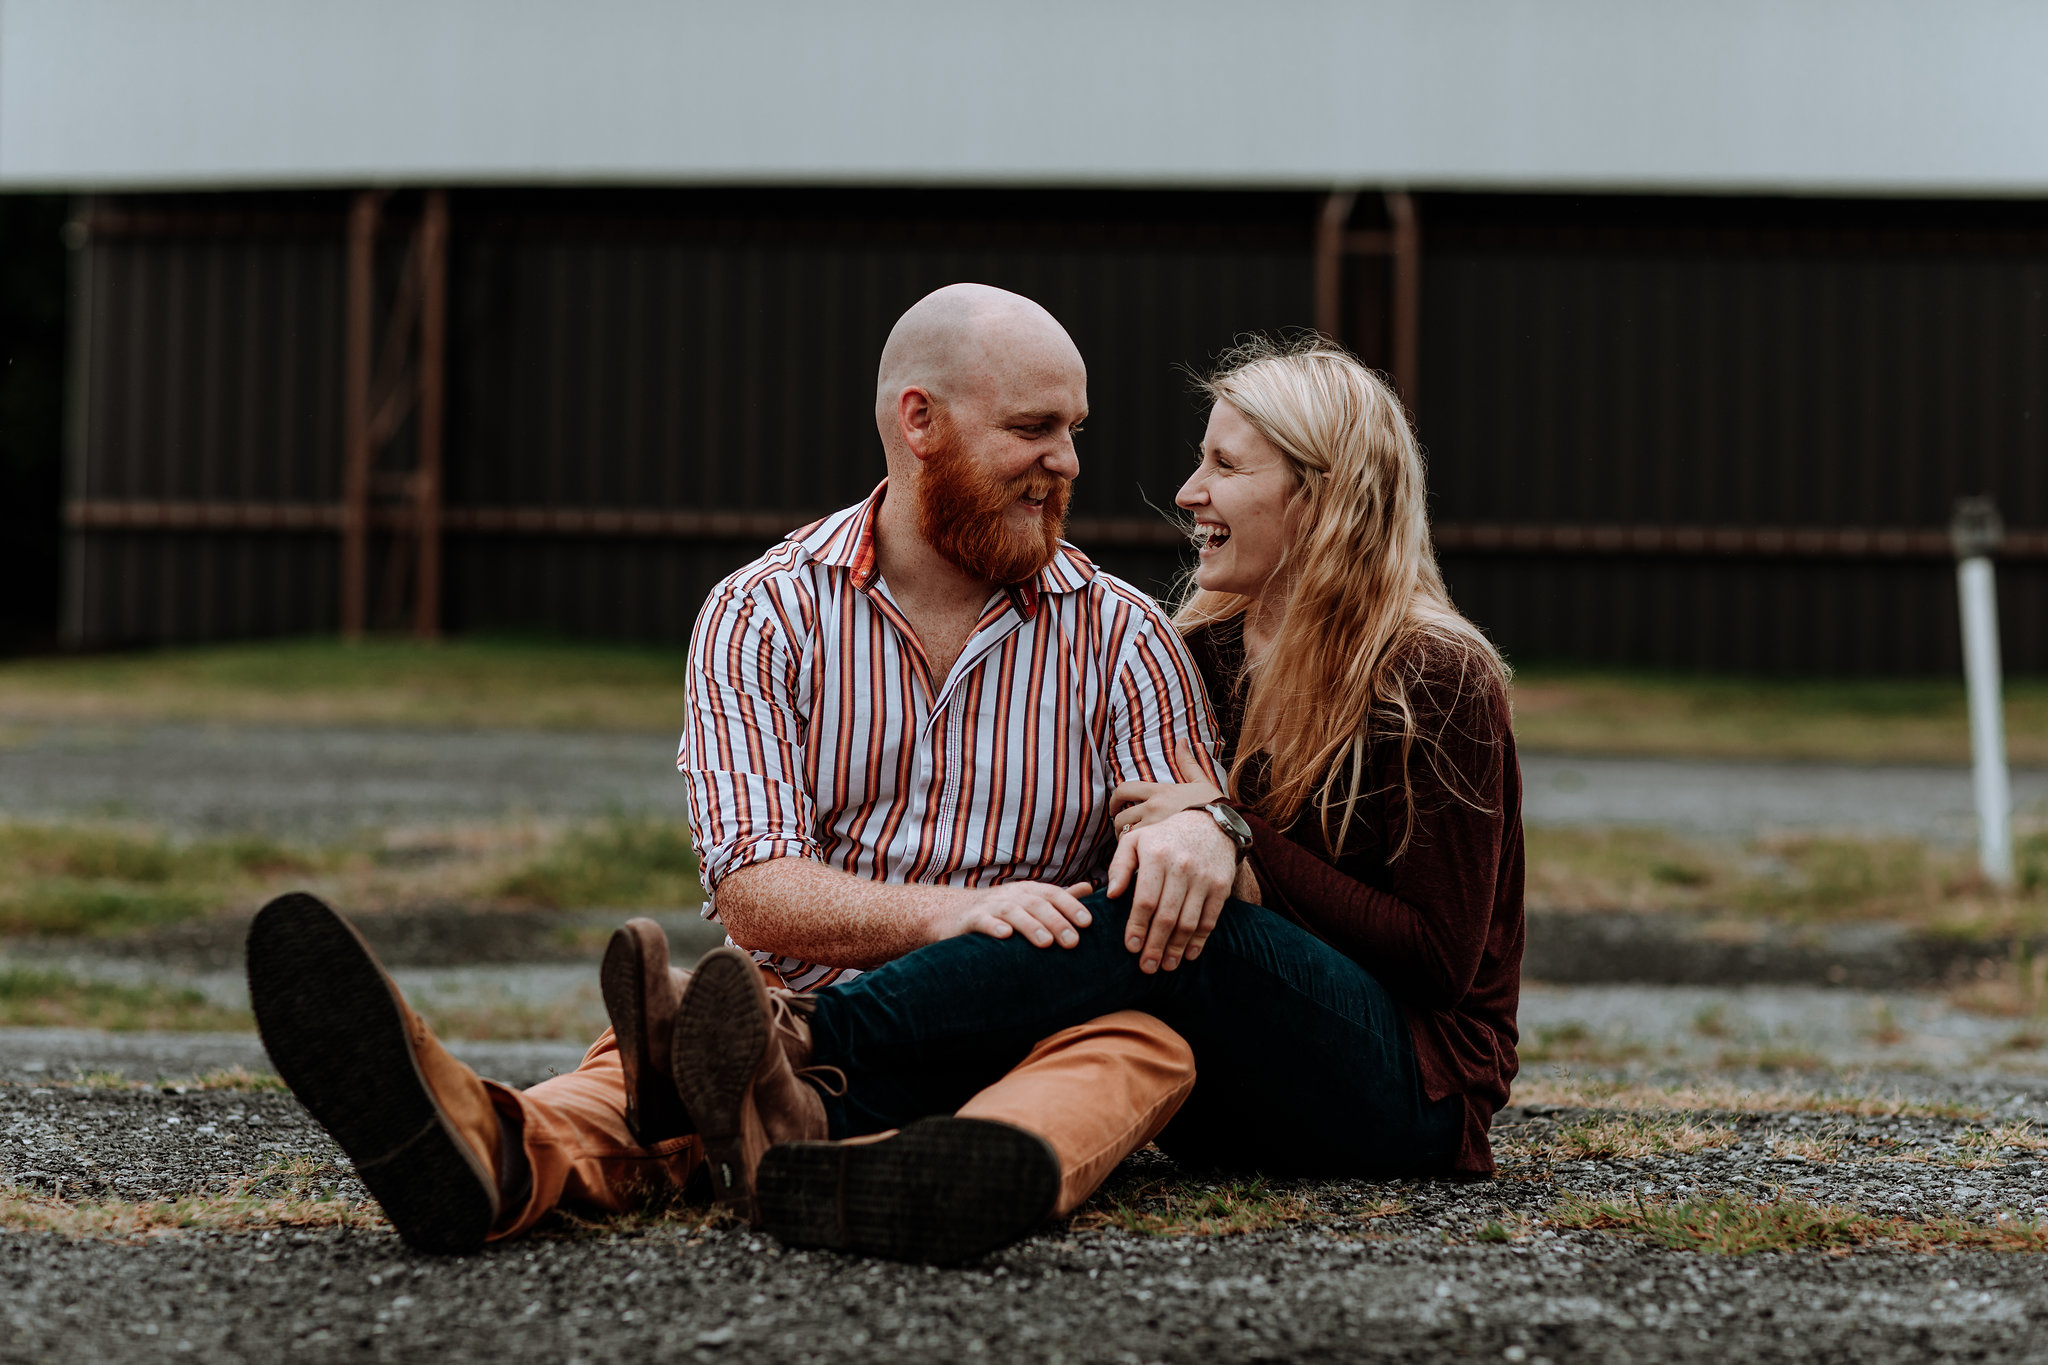 bethlehem-pa-engagement-photography-portrait-4